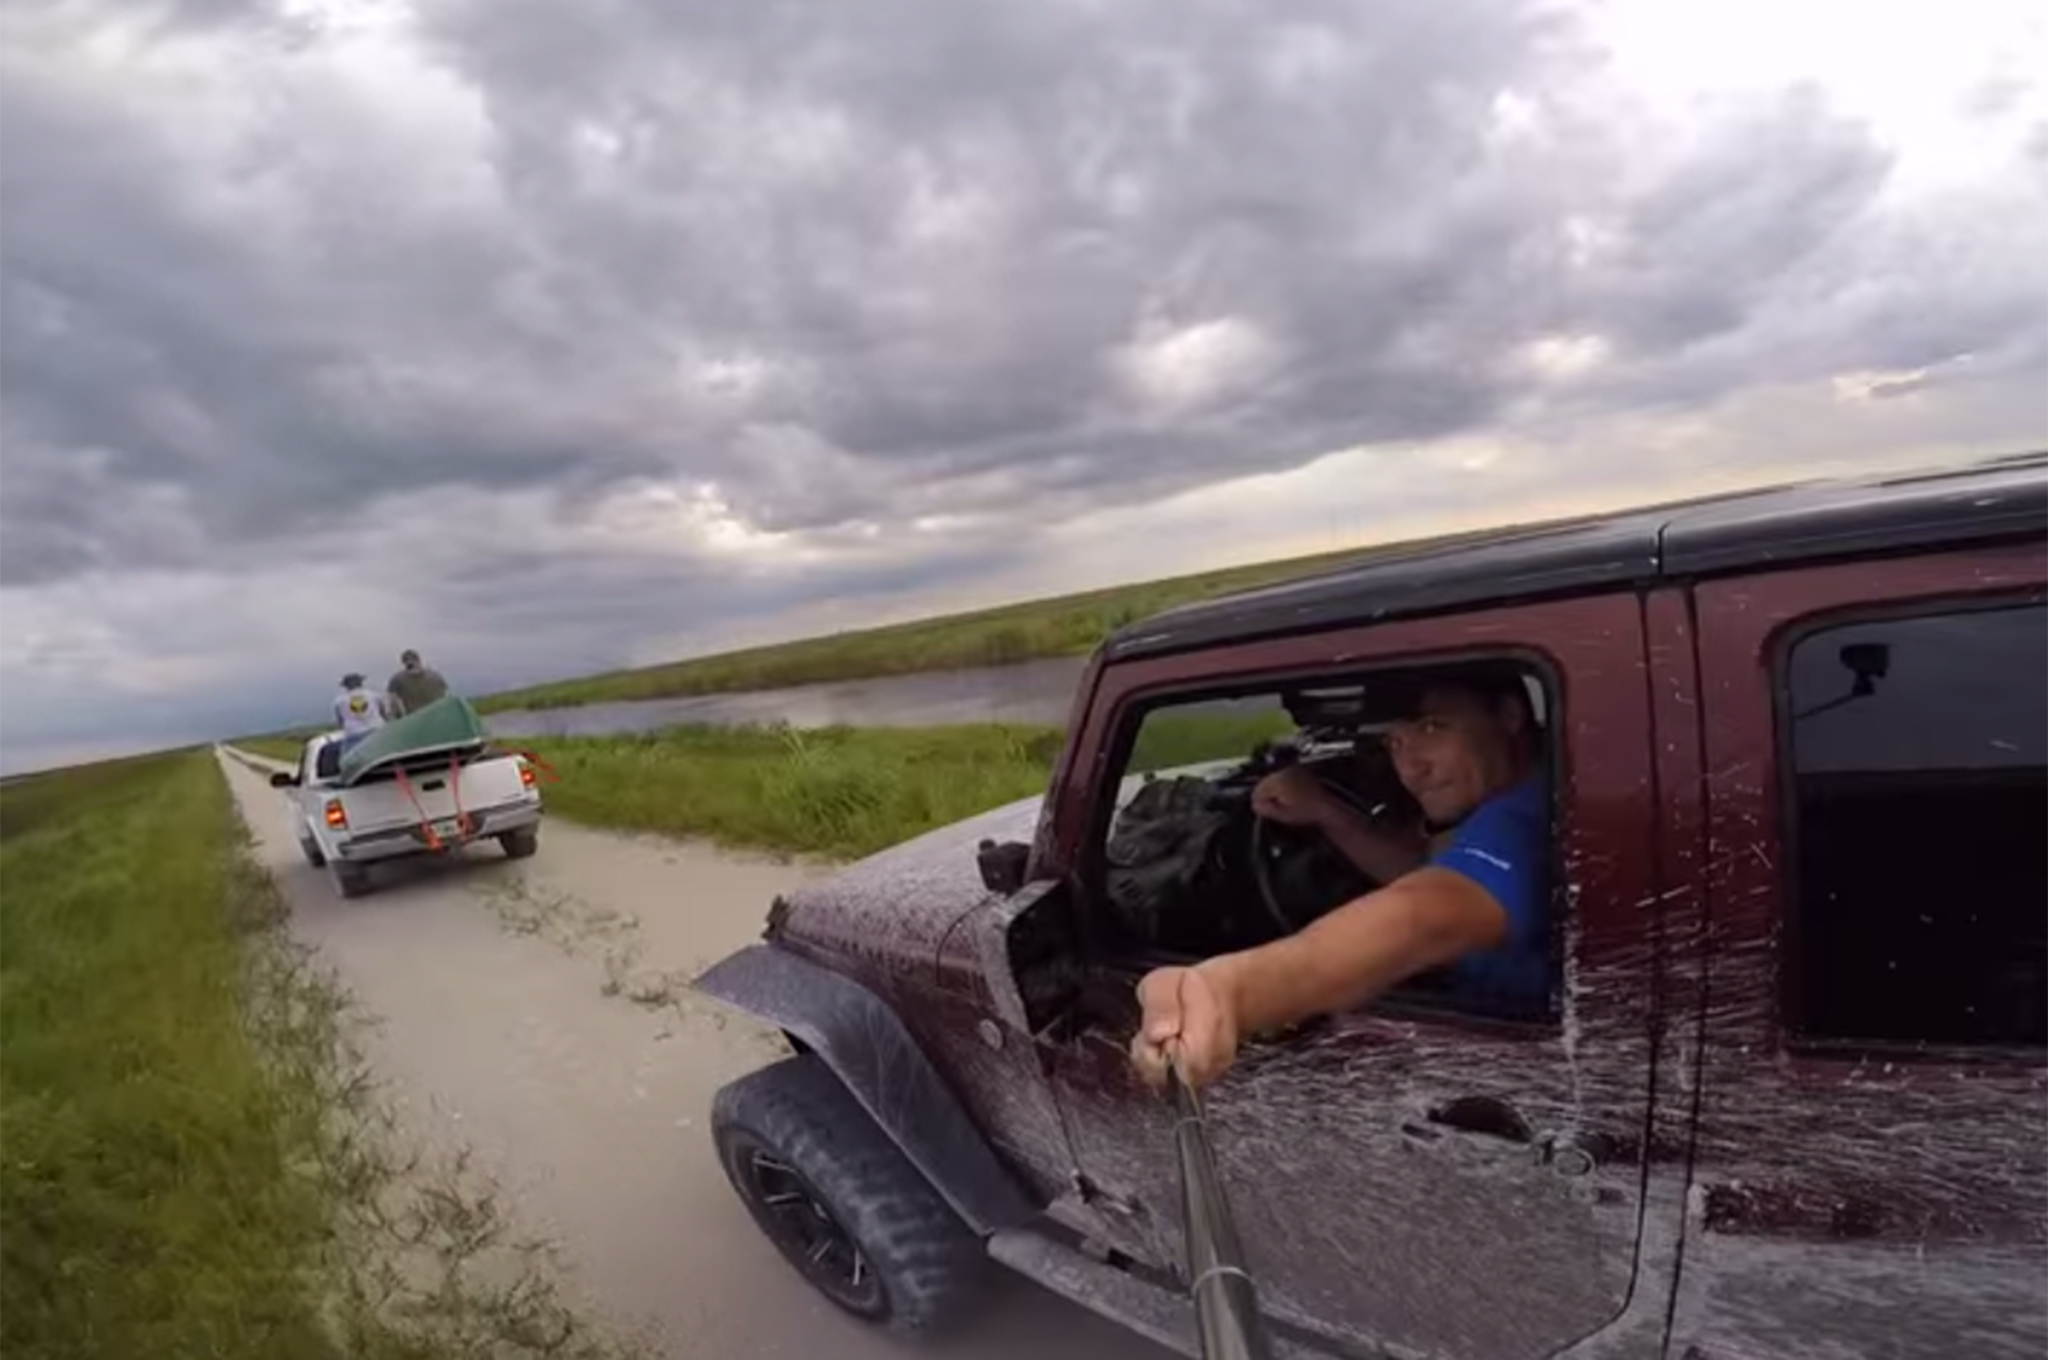 florida-man-selfie-stick-wrangler-crash